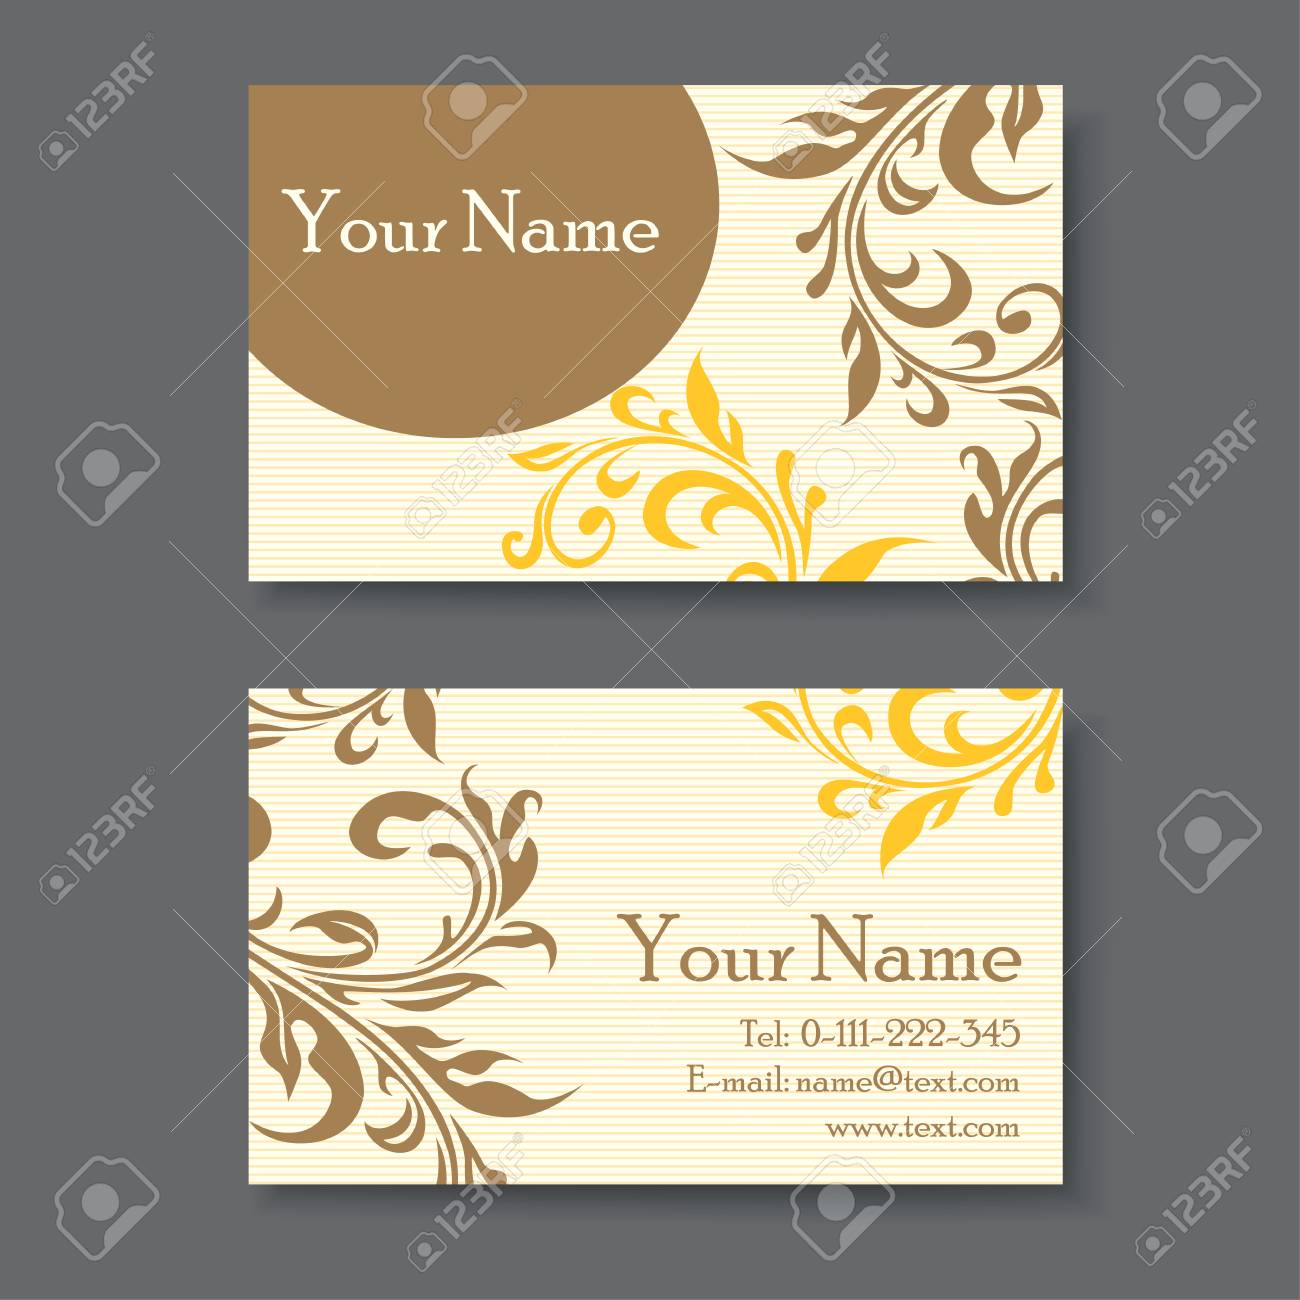 Vintage business card template with floral elements royalty free vector vintage business card template with floral elements cheaphphosting Image collections